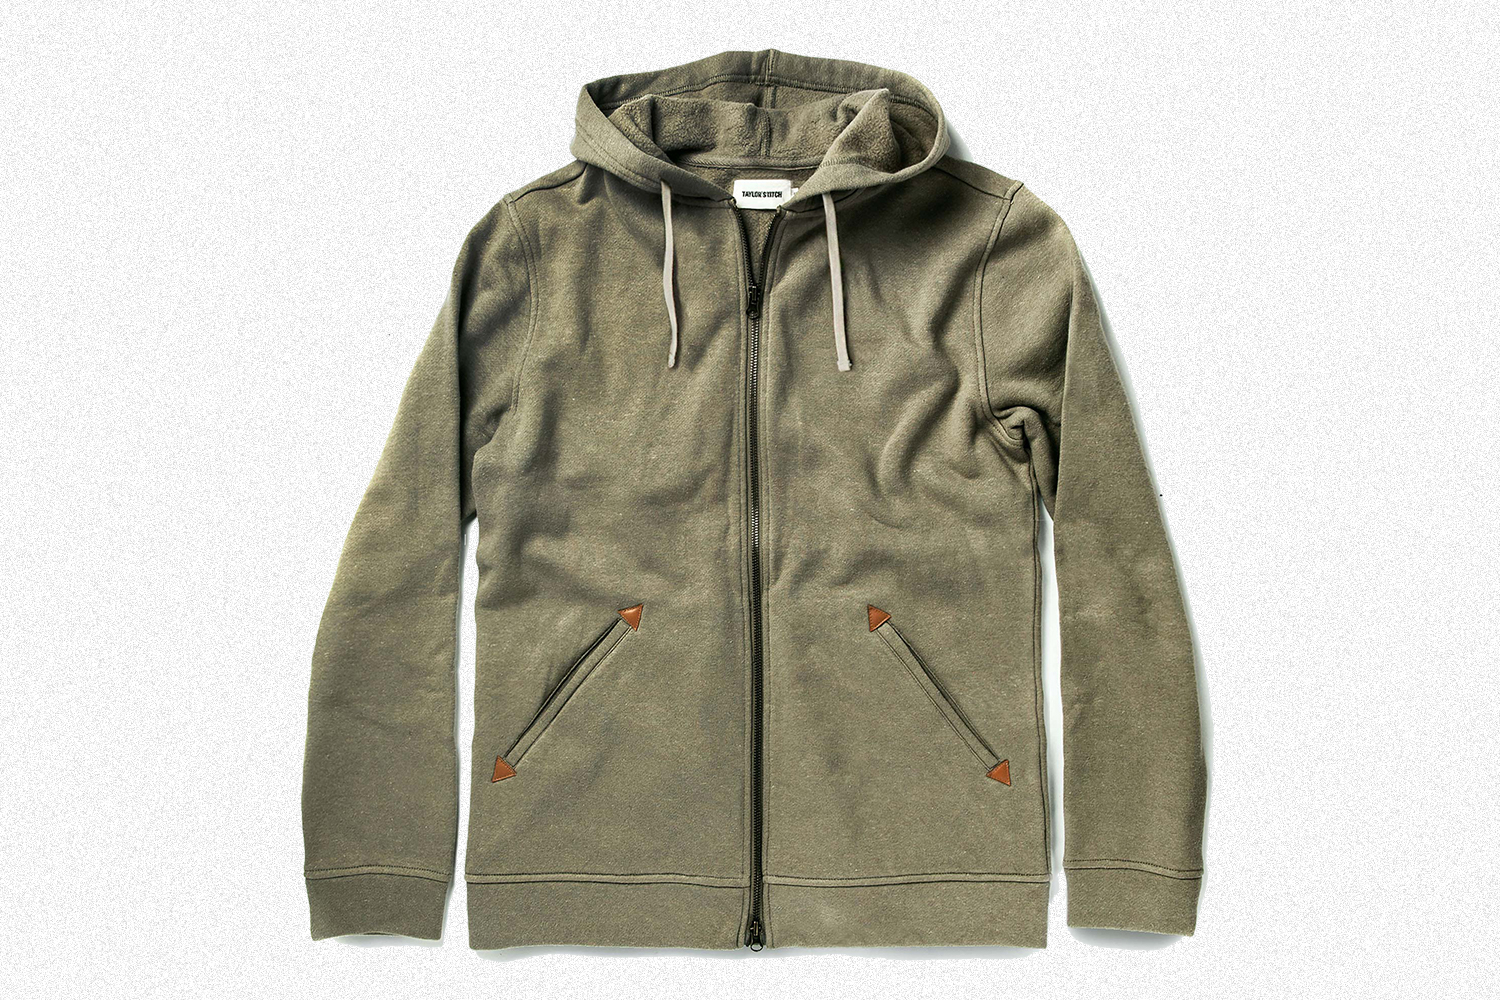 Apres Hoodie from Taylor Stitch